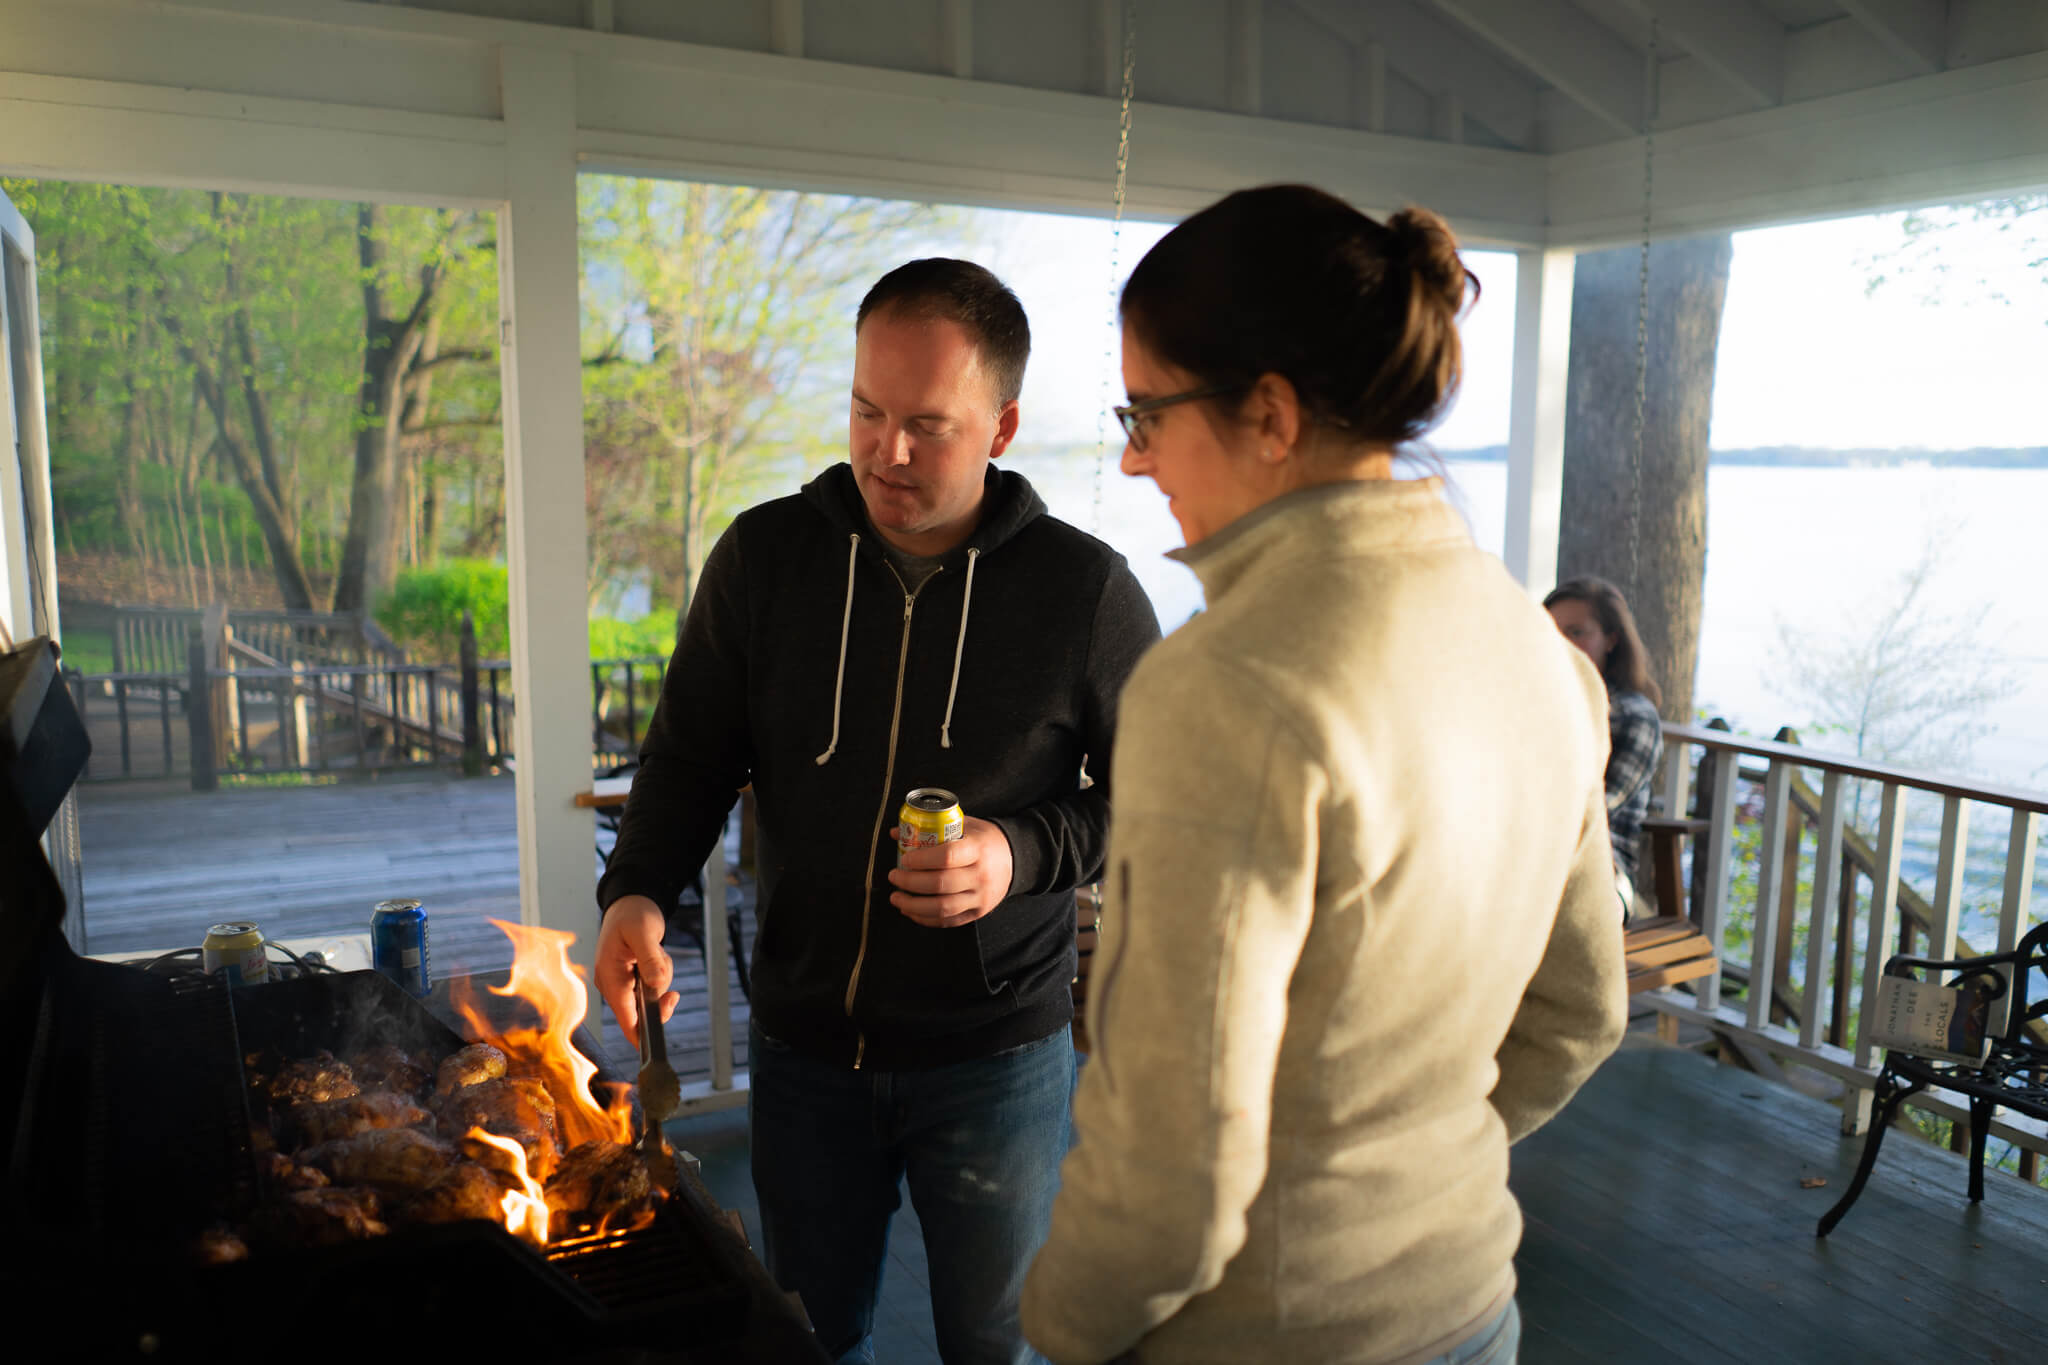 Kevin Lawler  and  Maria Gibbs  grilling (and burning) chicken on the original front porch.